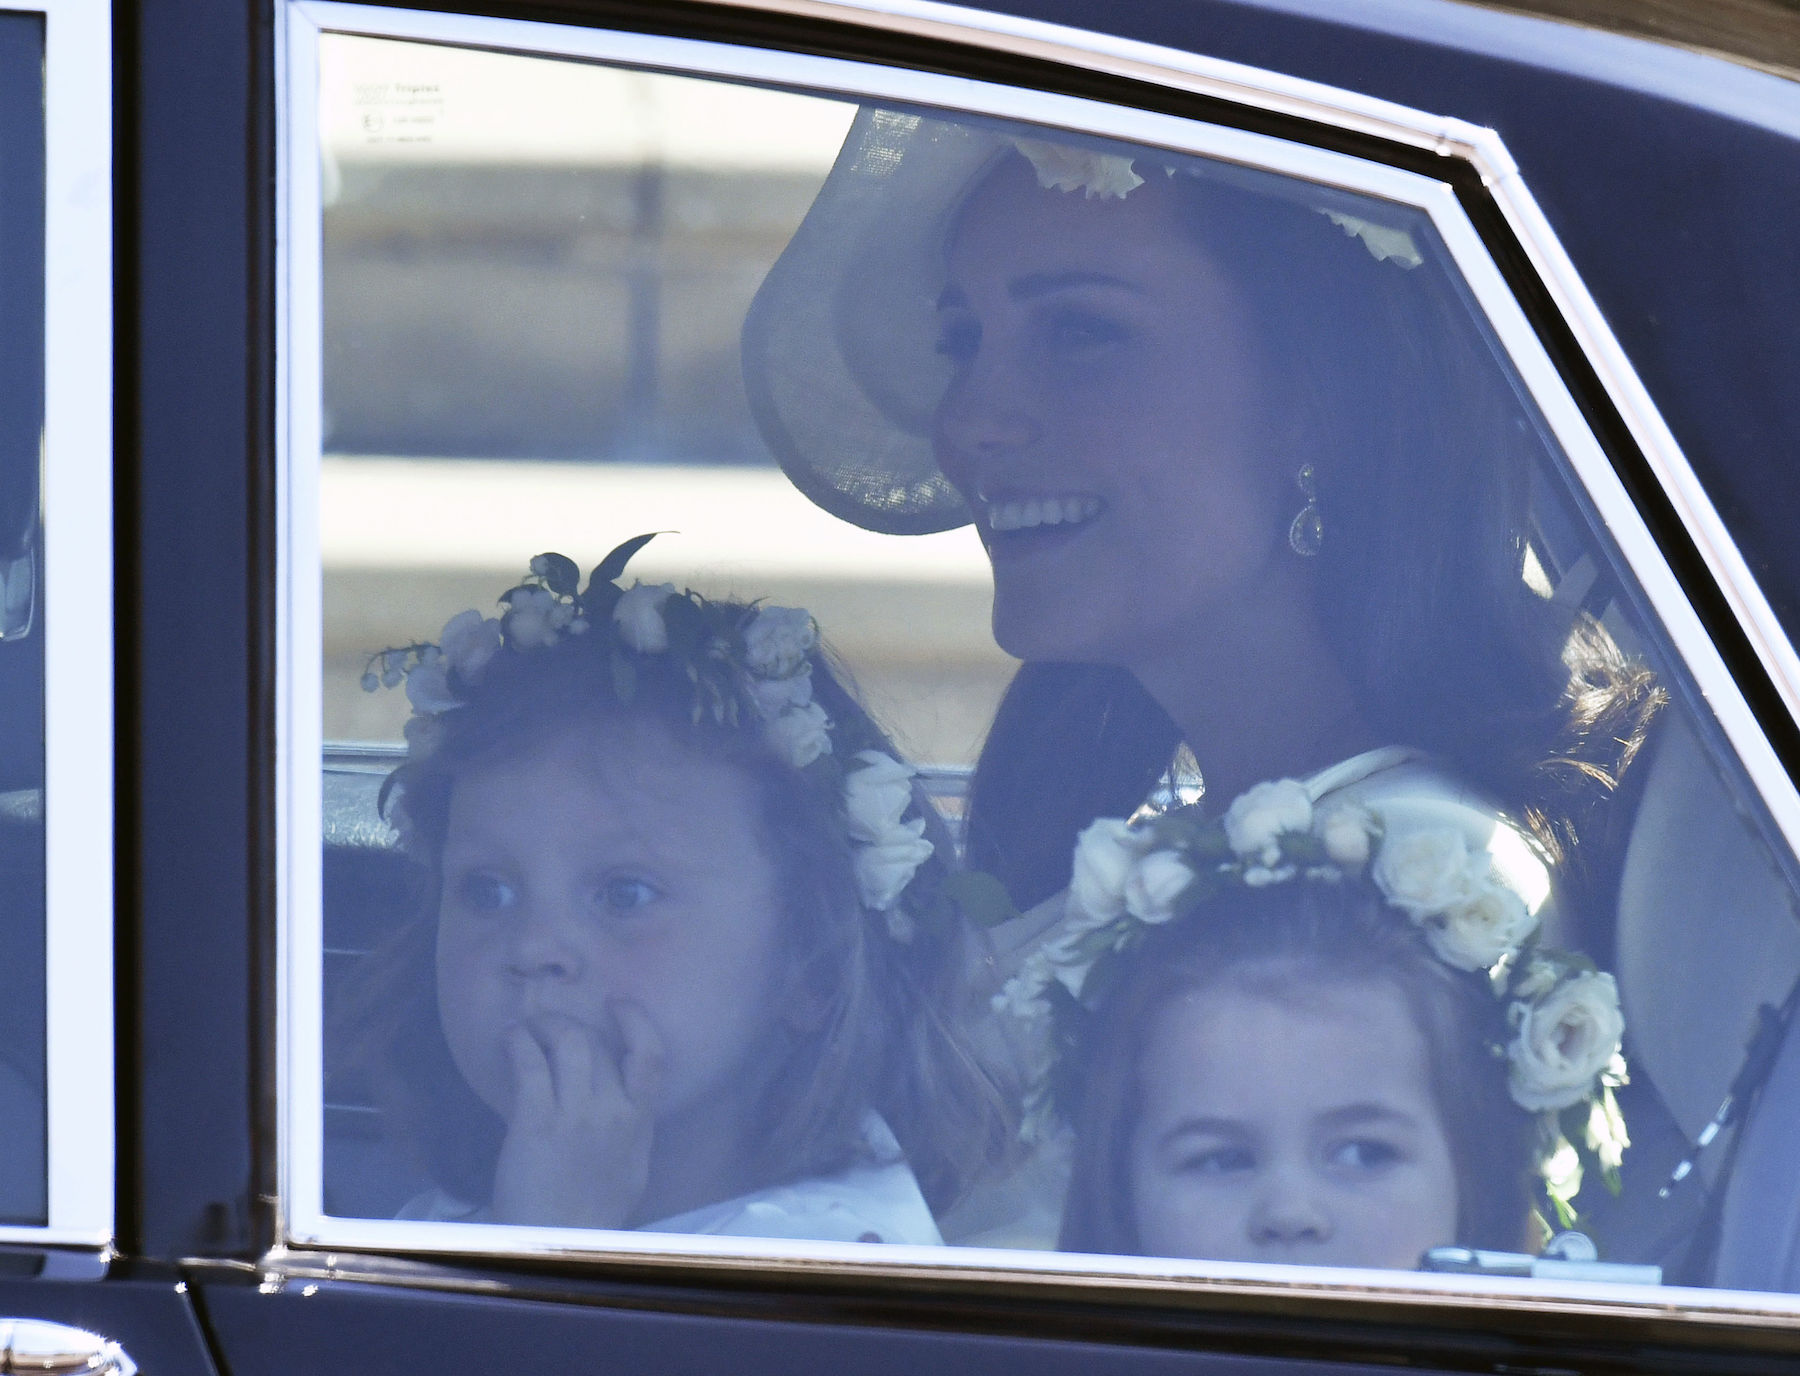 <div class='meta'><div class='origin-logo' data-origin='AP'></div><span class='caption-text' data-credit='Ben Birchhall/pool photo via AP'>Kate, Duchess of Cambridge arrives with the Princess Charlotte, right, for the wedding ceremony of Prince Harry and Meghan Markle at St. George's Chapel in Windsor Castle.</span></div>